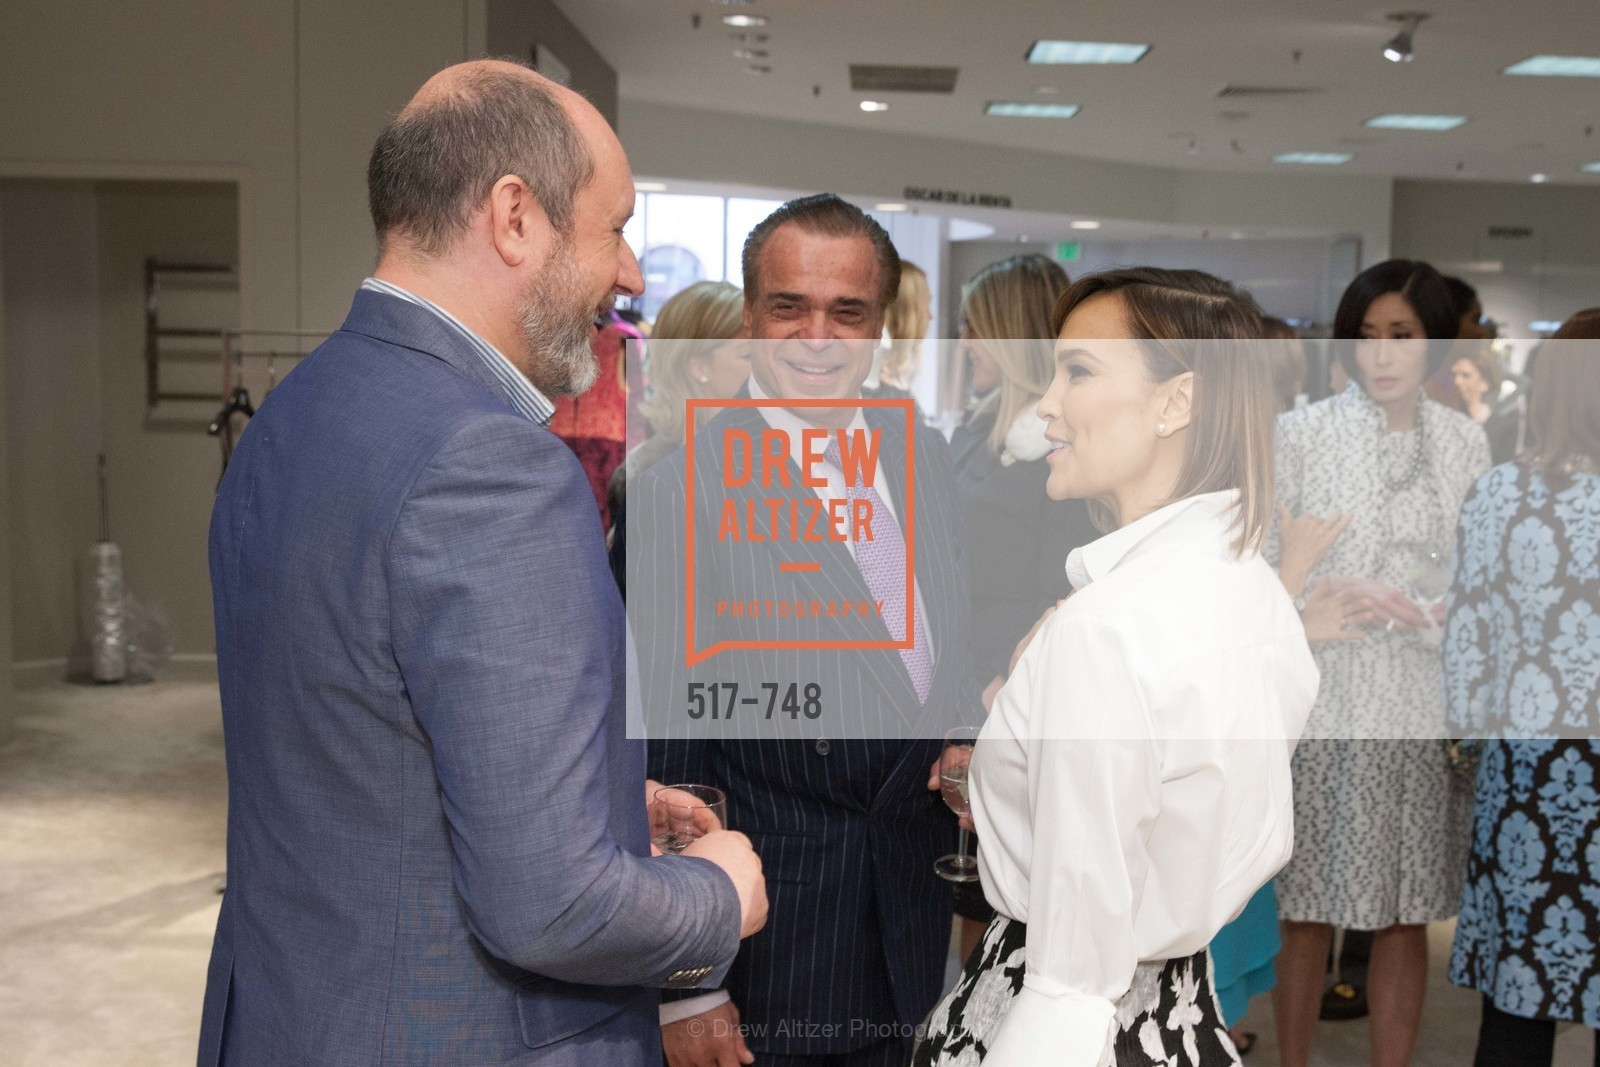 Peter Copping, Boaz Mazor, Lora DuBain, PETER COPPING'S Personal Appearance at SAKS FIFTH AVENUE, US, May 22nd, 2015,Drew Altizer, Drew Altizer Photography, full-service agency, private events, San Francisco photographer, photographer california